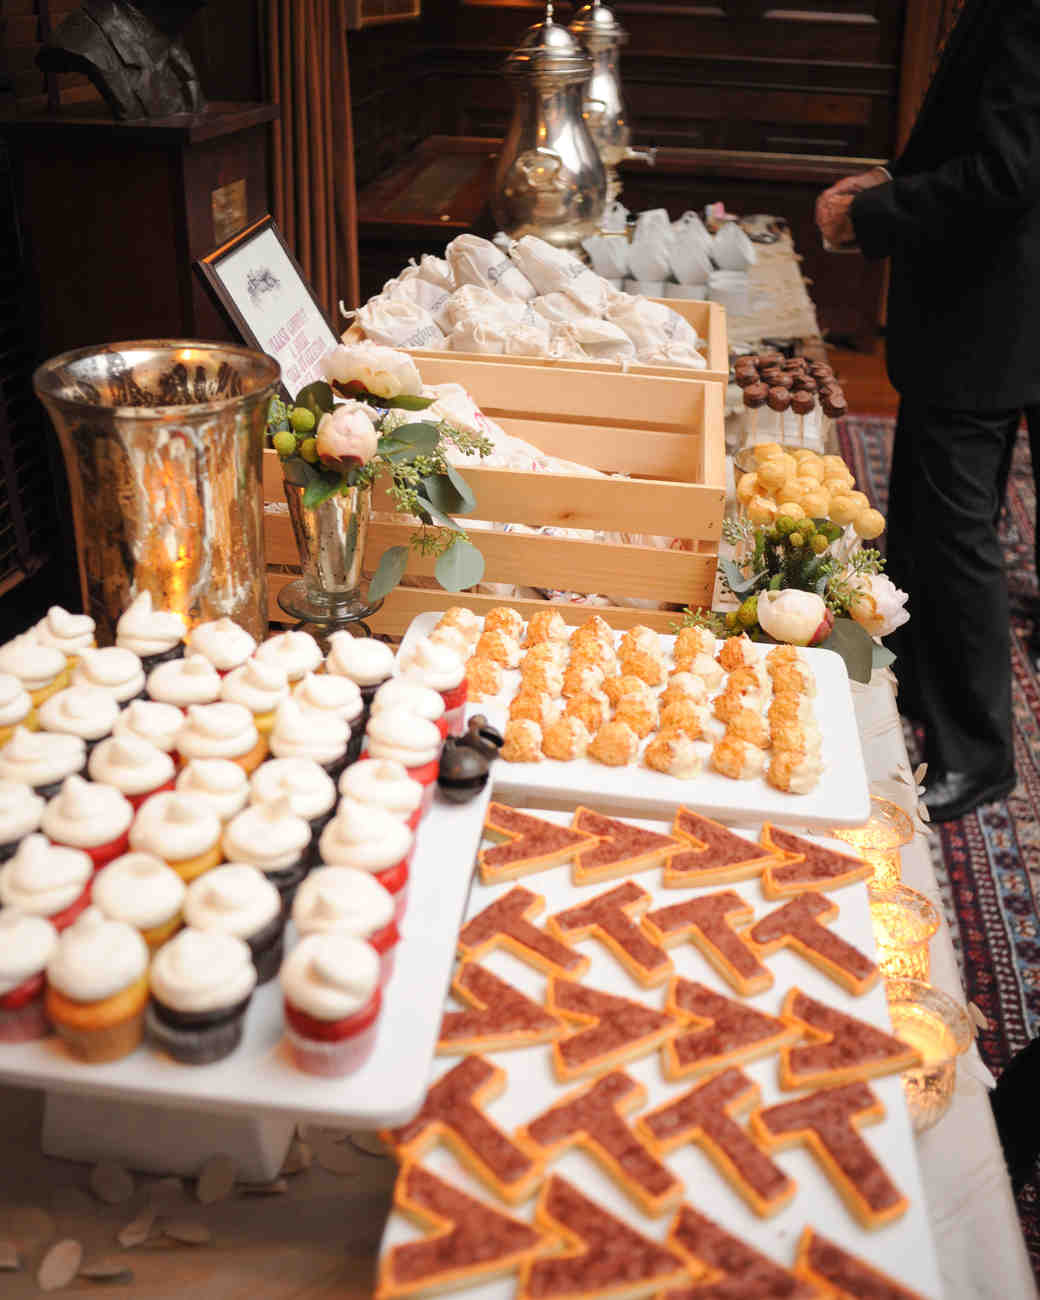 Wedding Desserts Bar Ideas: Dessert Table Ideas From Real Weddings